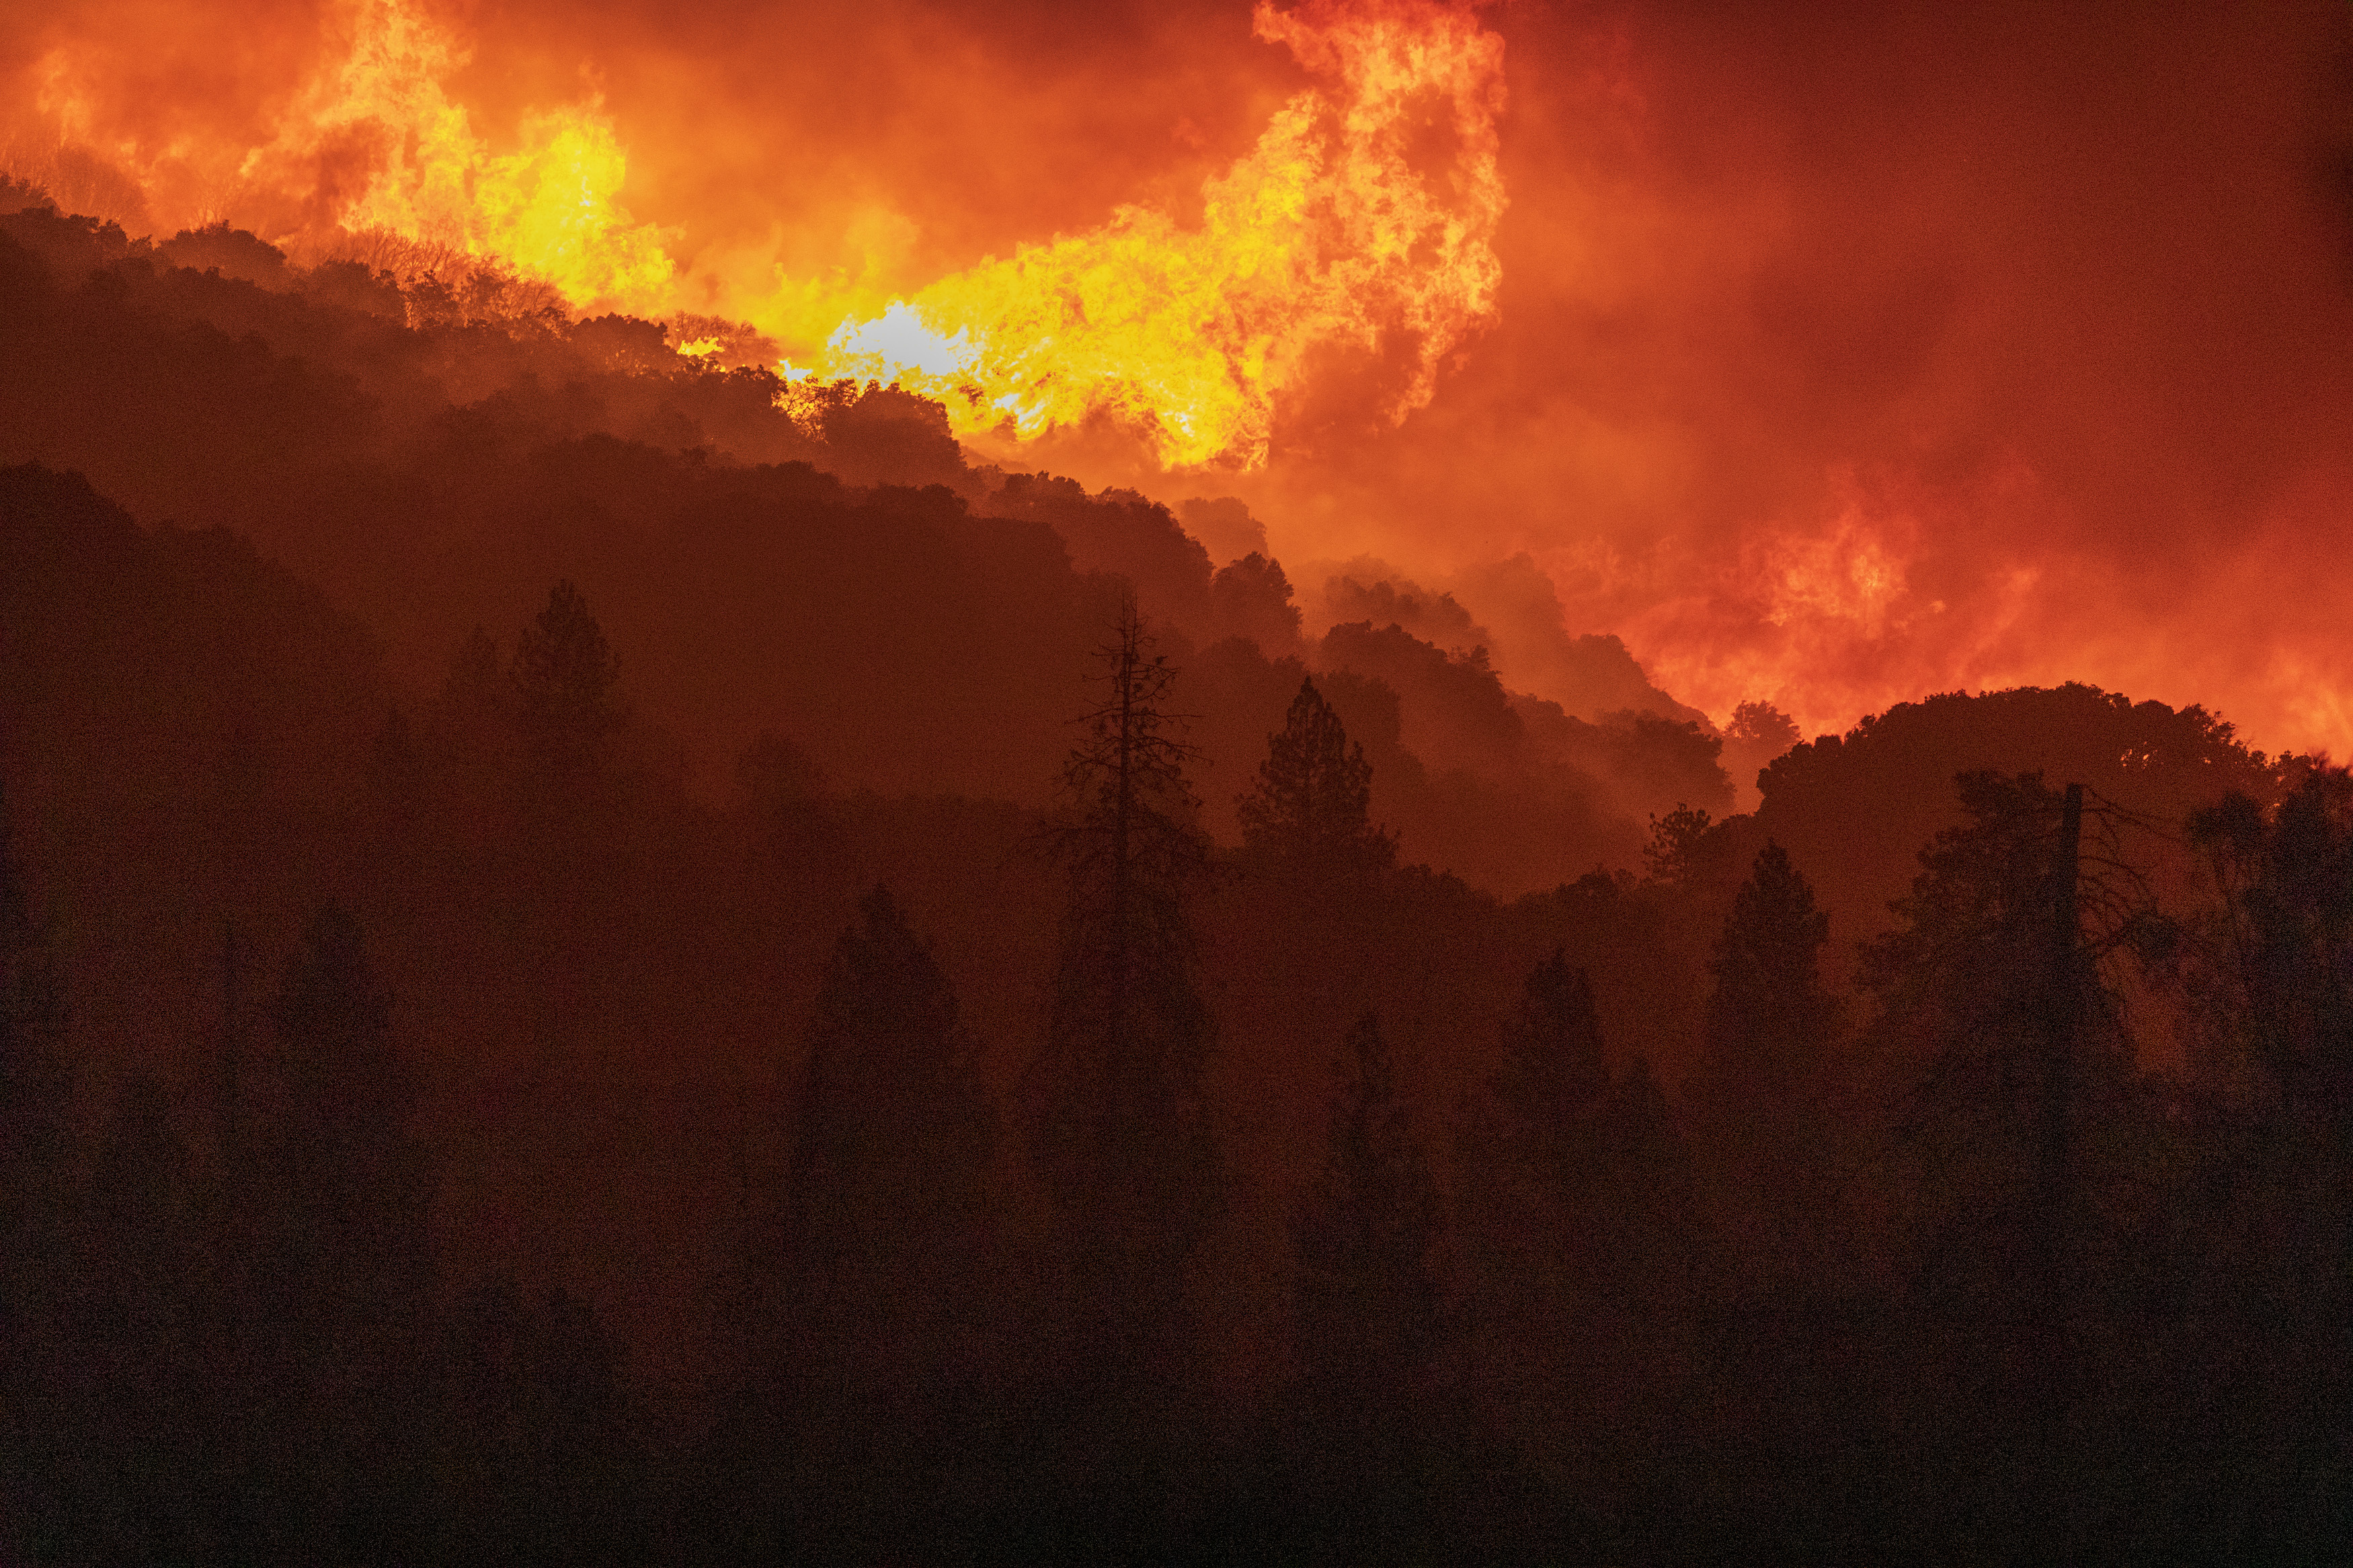 California wildfires have burned a record-breaking 2.2 million acres SmYq669oUrR6XFR54QqjX9